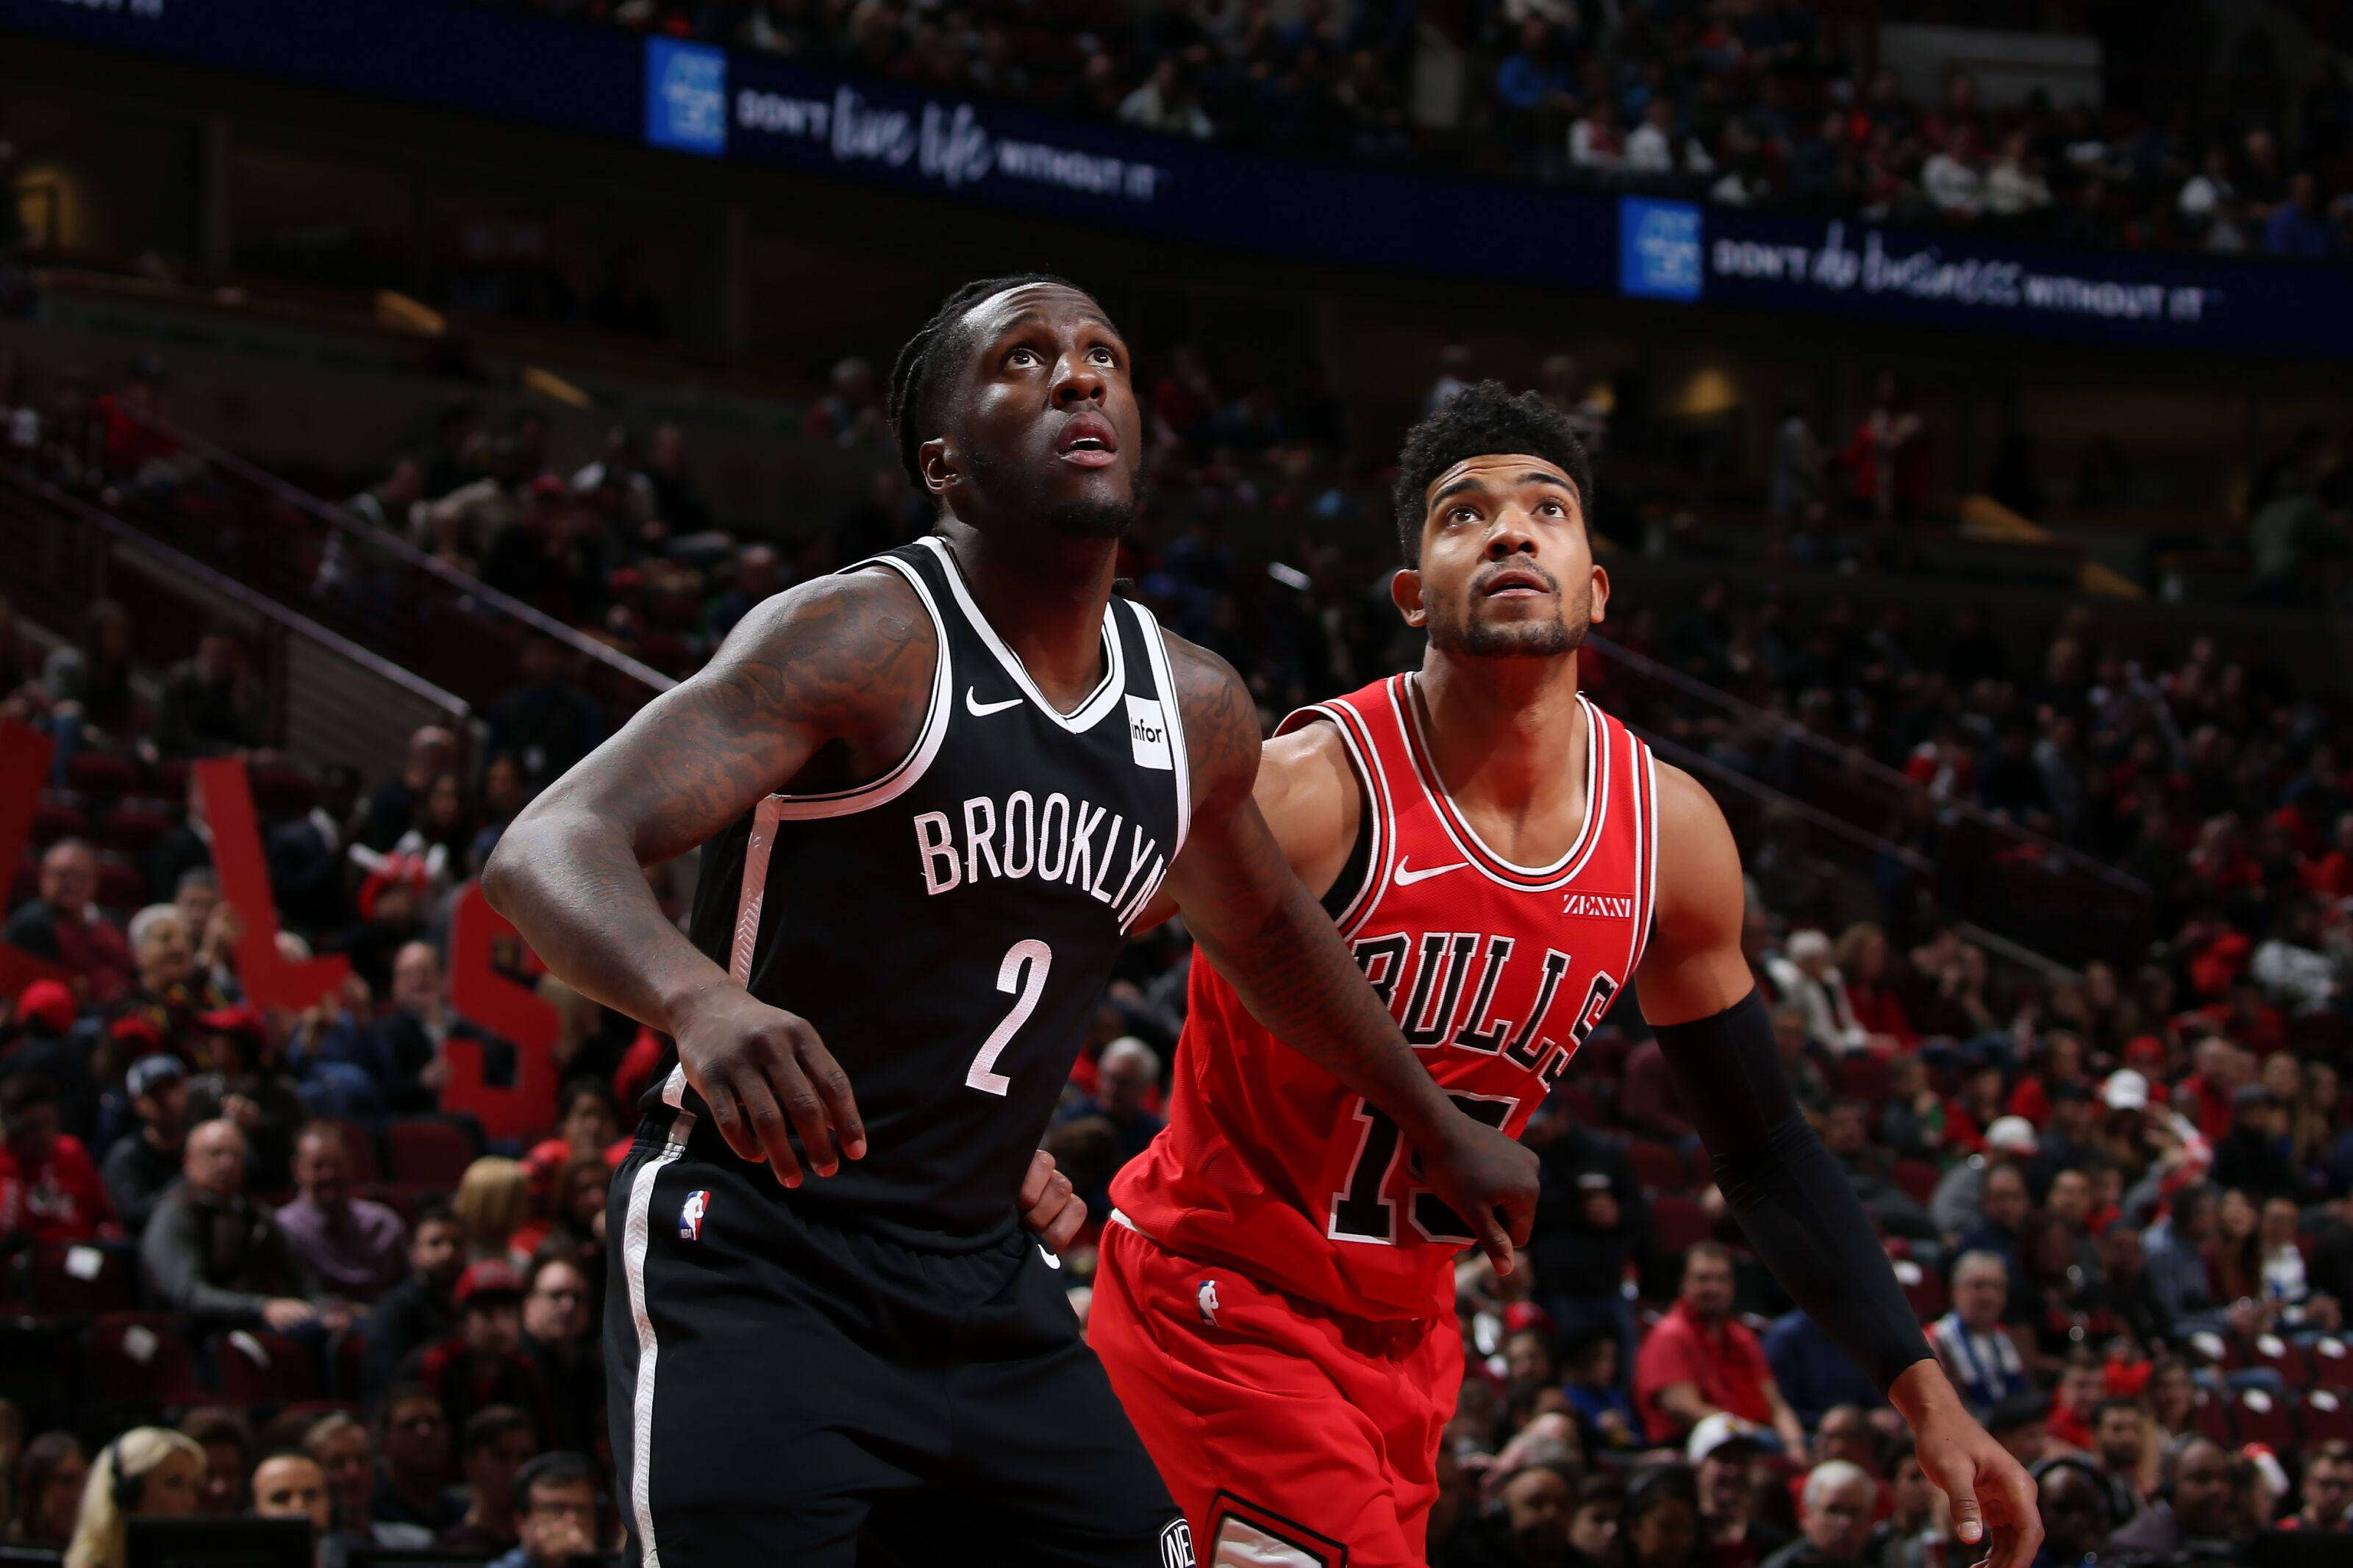 Chicago Bulls get out-hooped by Brooklyn Nets